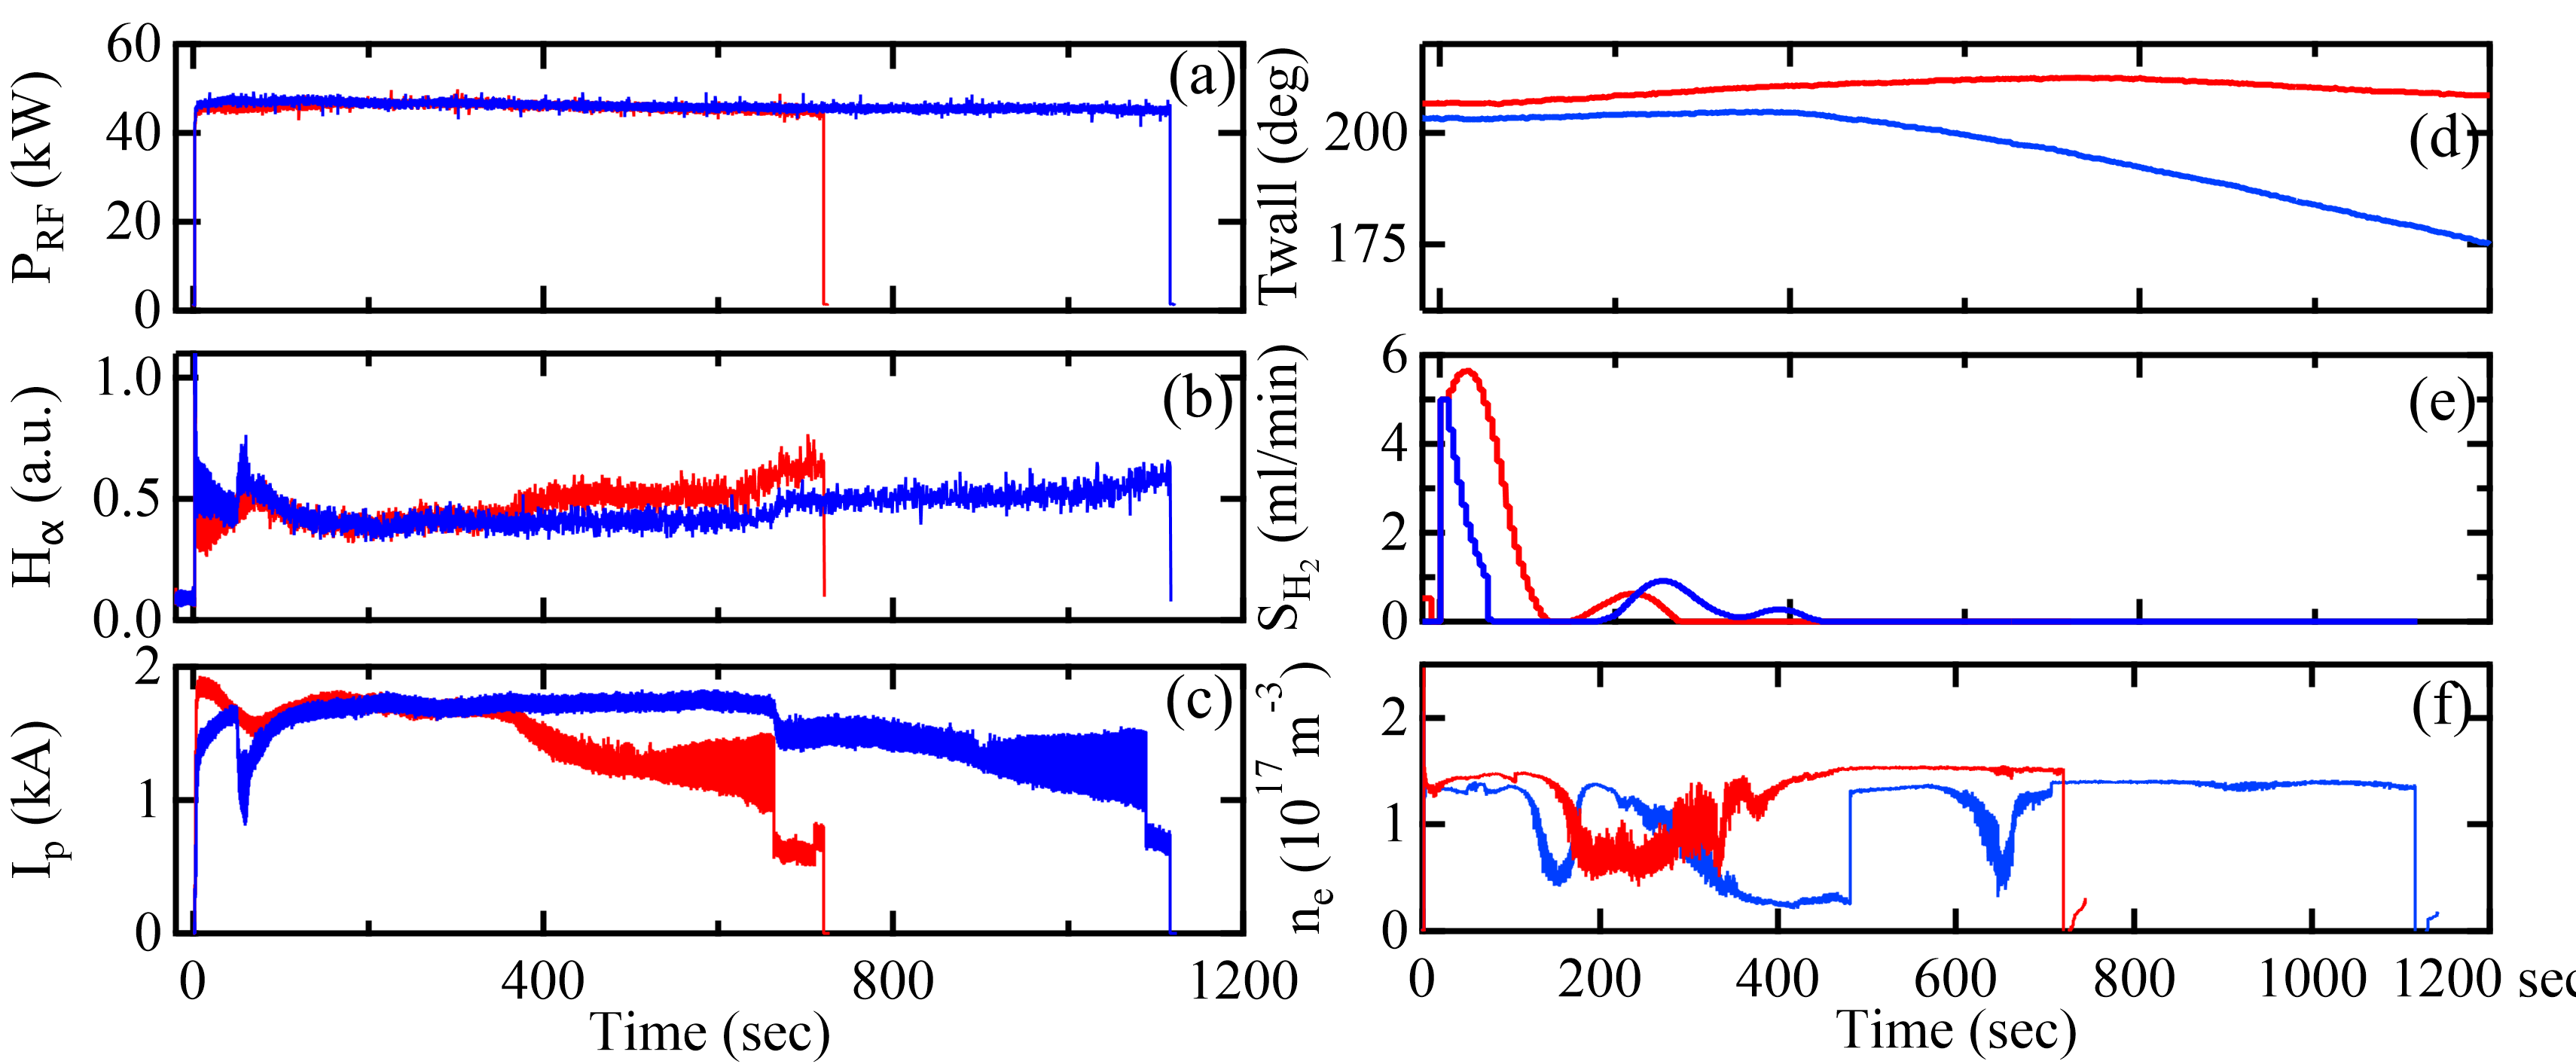 The waveforms of (a) RF power, (b) H$_{\alpha}$ signal, (c) plasma current, (d) hot wall temperature, (e) supplied H$_2$ gas flux, and (d) line-averaged electron density with TWC (blue lines) and no TWC (red lines) are compared. The wall temperature is set at 473 K before the start of the discharges. The ion grad-B drift direction was upward. The drop in temperature at 400s (blue trace, in framed), is due to initiation of water cooling of the top hot wall at 180s.